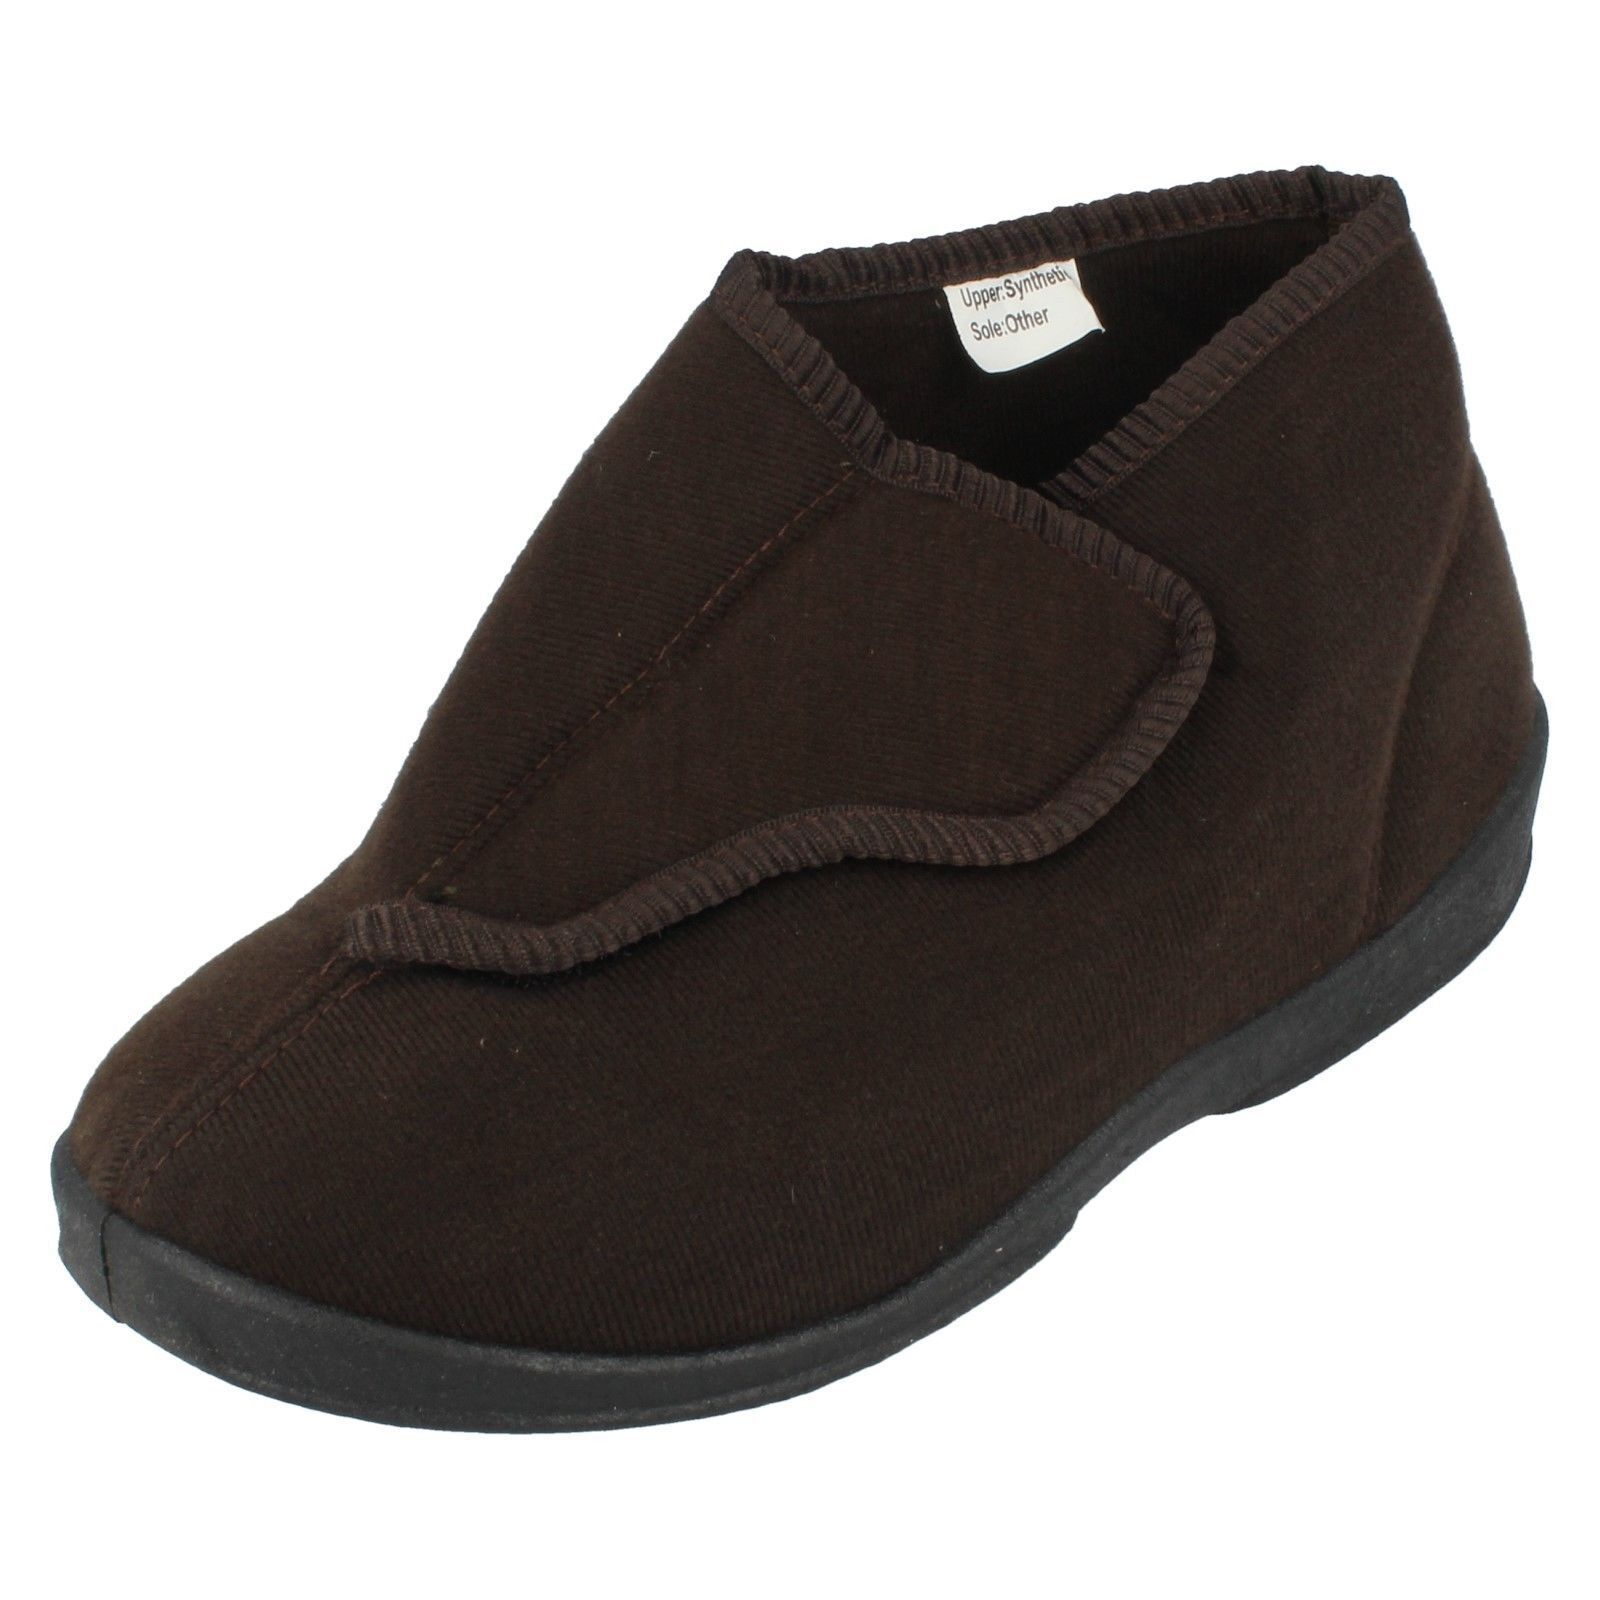 ba645d3f8a51 Gentleman Lady MENS BROWN NATUREFORM SLIPPER BOOT ARTHUR BY NATUREFORM  BROWN The color is very eye-catching Trendy Brand feast WV1275 f34d3e